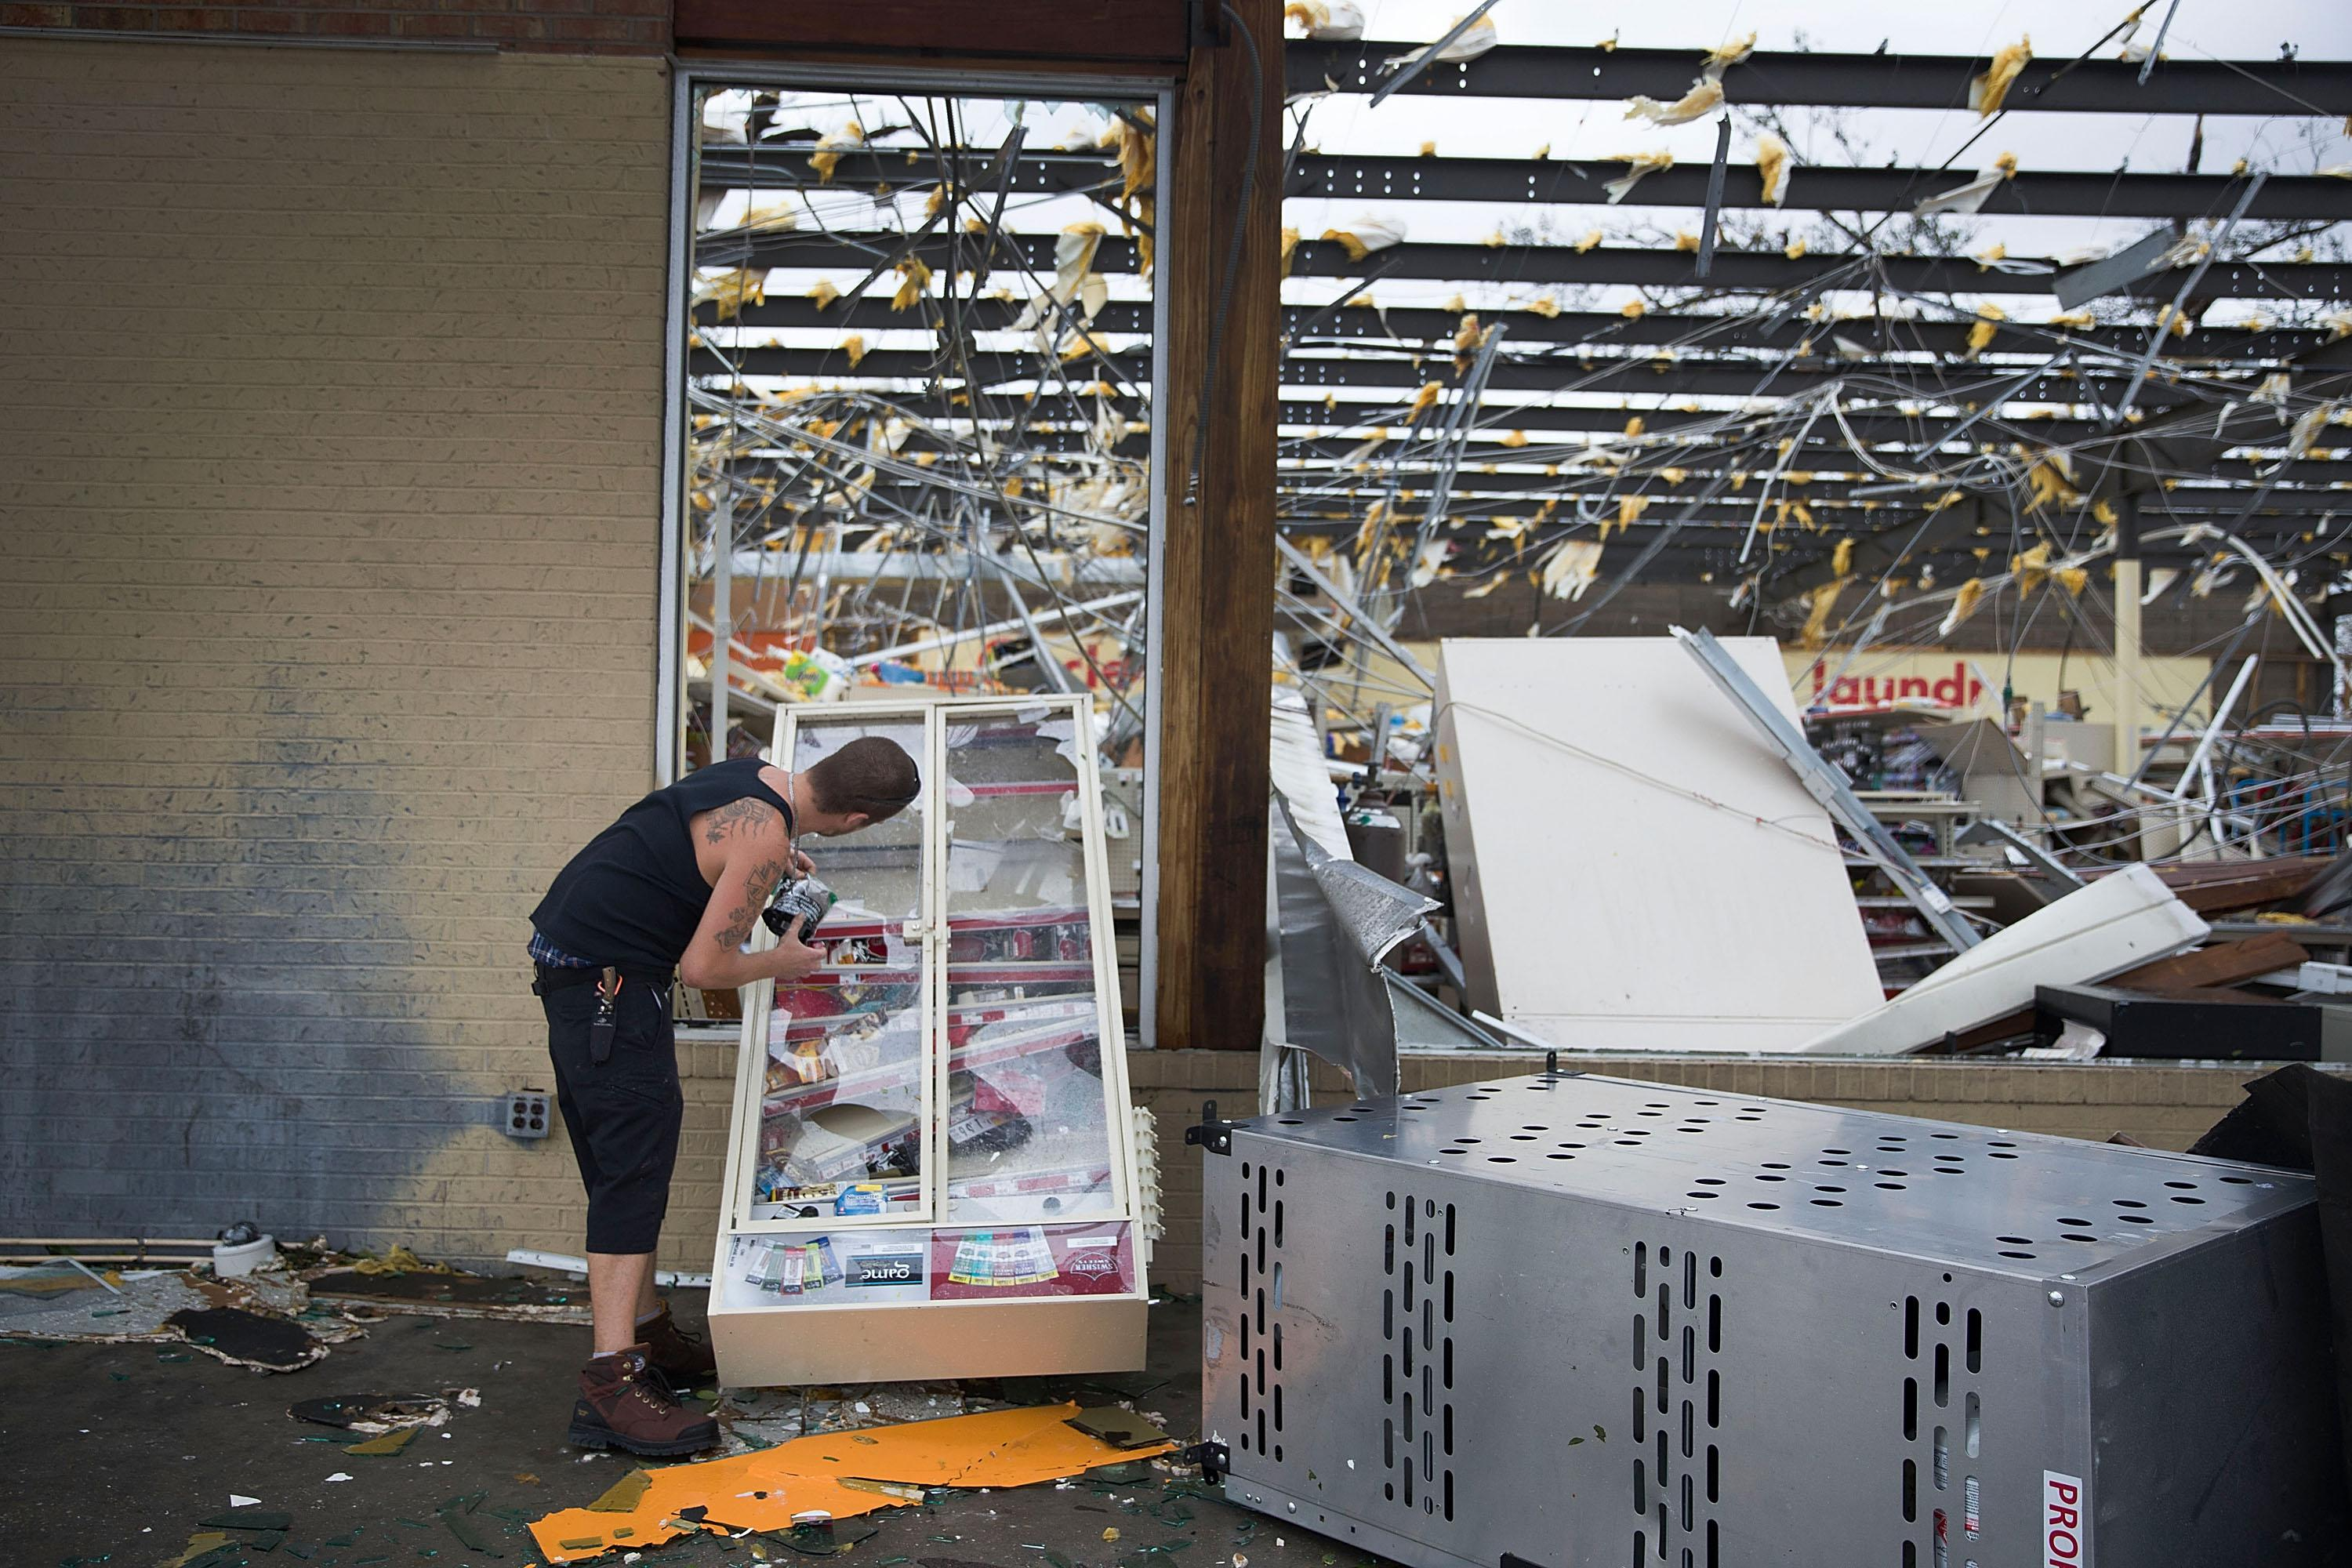 A man takes some tobacco products from a damaged store after hurricane Michael passed through the area on October 10, 2018 in Panama City, Florida.